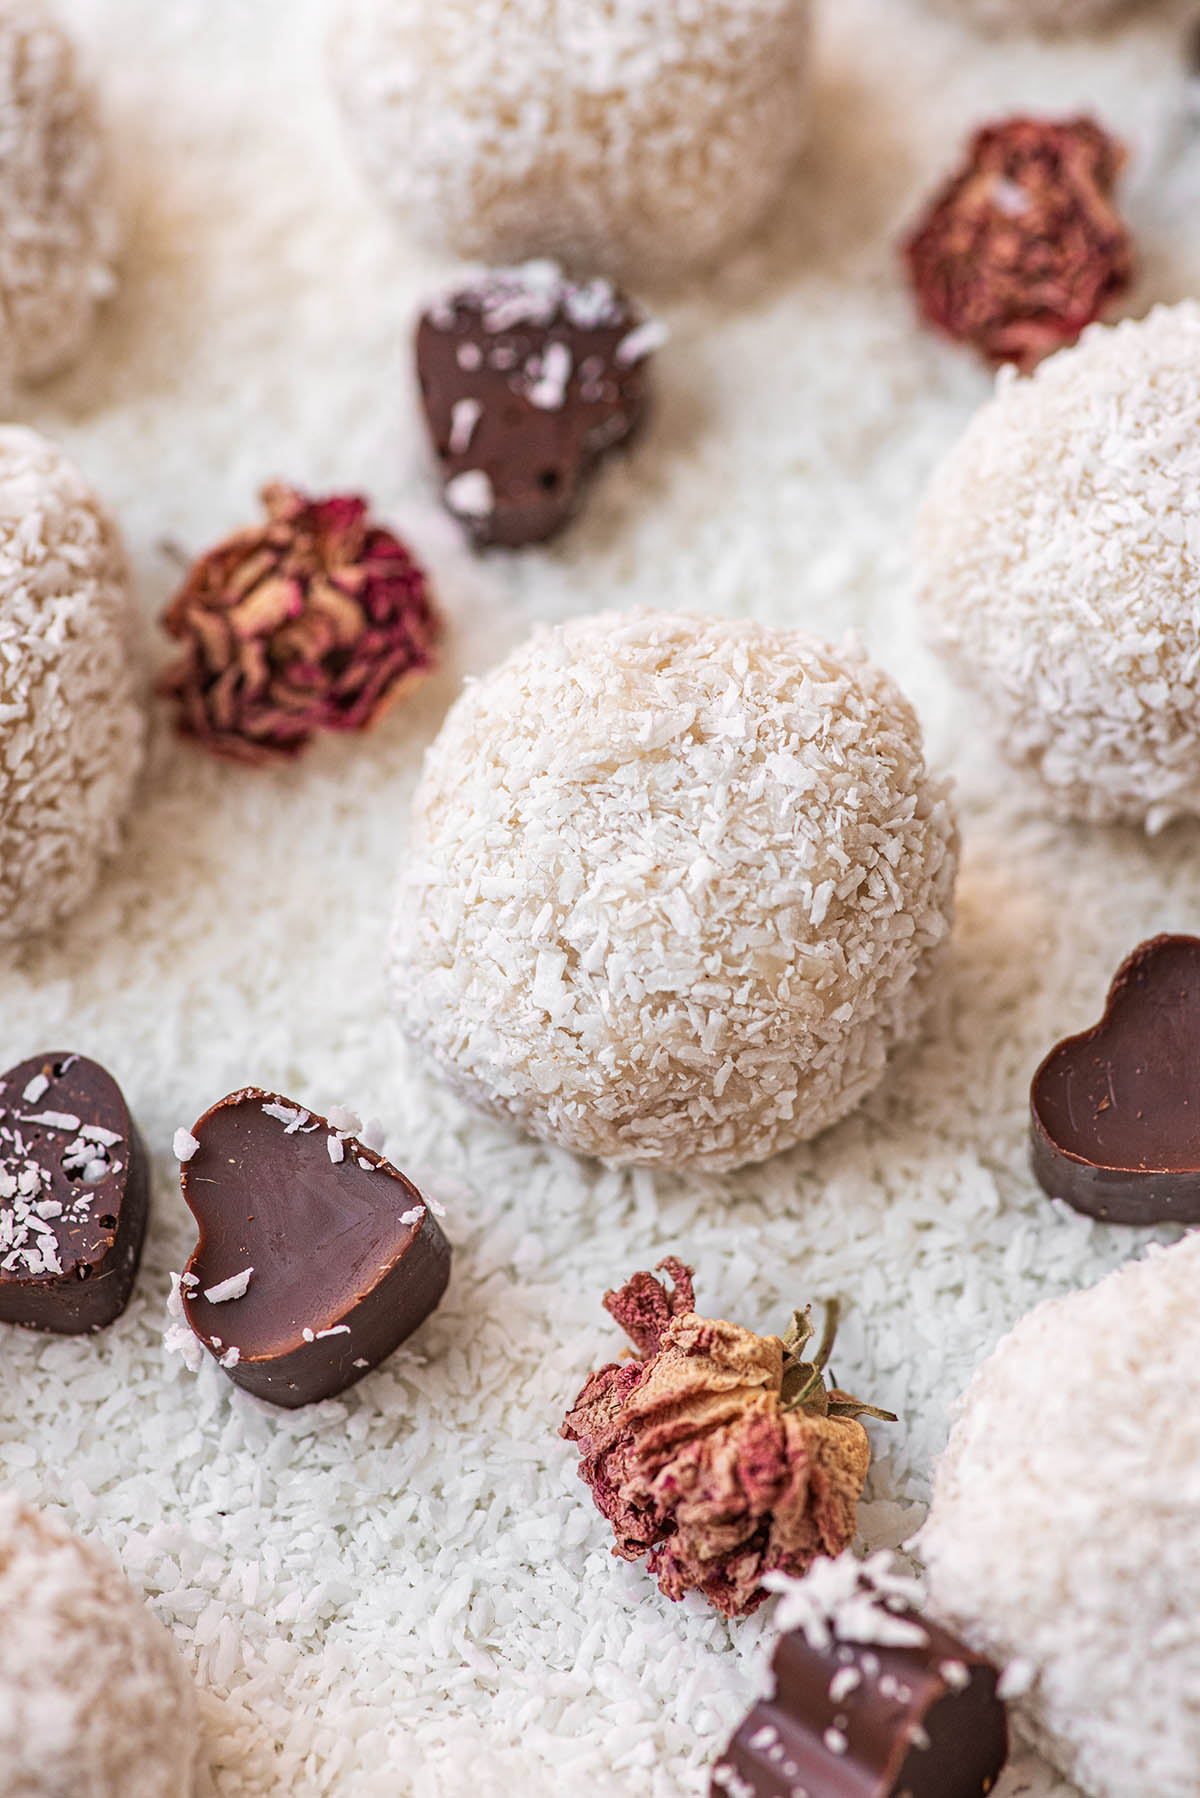 White chocolate truffles with shredded coconut and chocolate hearts.